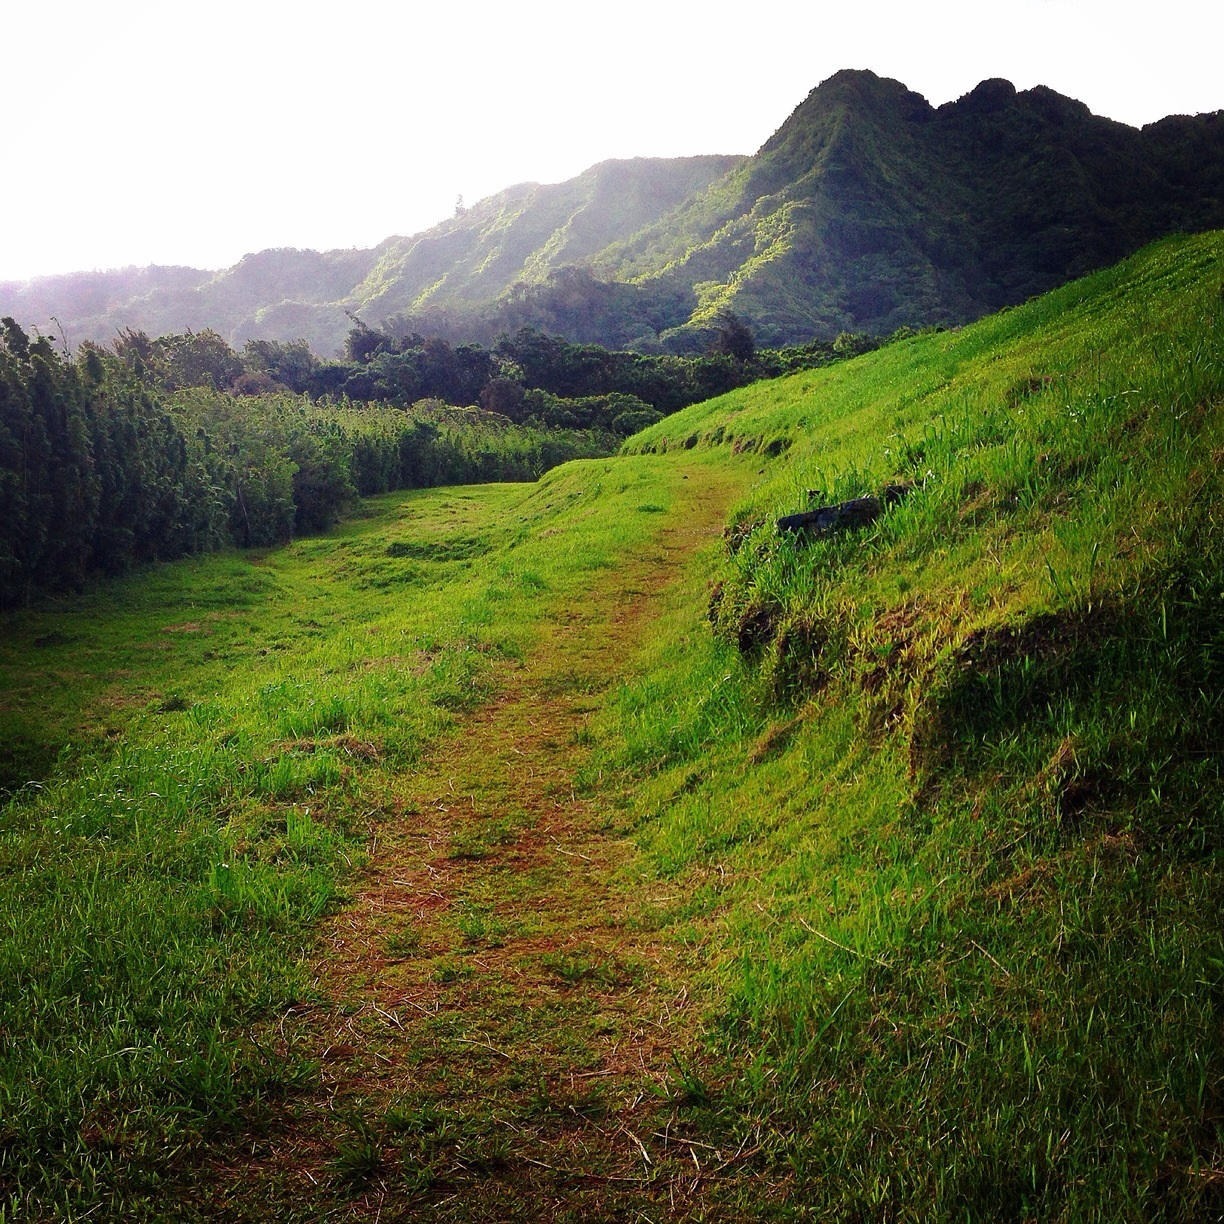 Nature close by to the city is among the best reasons to travel to Honolulu